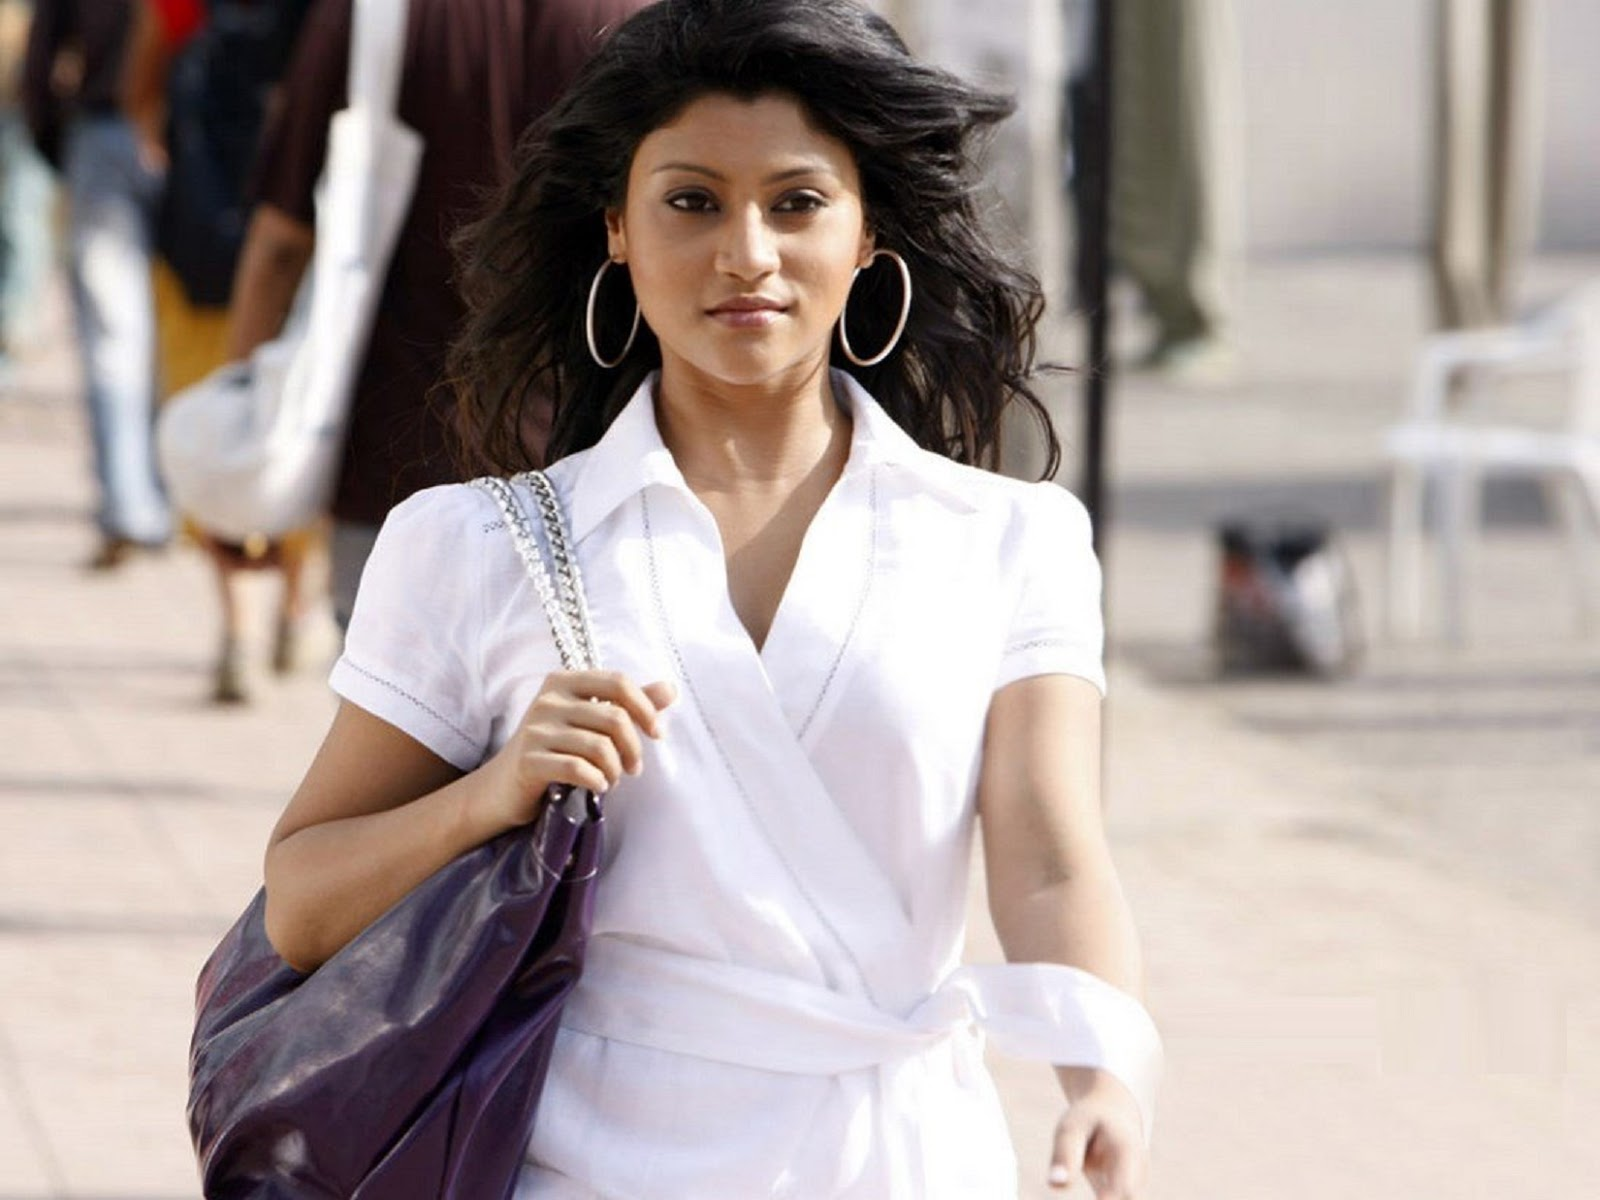 konkona sen sharma sisterkonkona sen sharma songs, konkona sen sharma height, konkona sen sharma movies, konkona sen sharma wikipedia, konkona sen sharma filmography, konkona sen sharma instagram, konkona sen sharma facebook, konkona sen sharma and ranvir shorey, konkona sen sharma pregnant, konkona sen sharma divorce, konkona sen sharma sister, konkona sen sharma kiss, konkona sen sharma hot pics, konkona sen sharma wedding pictures, konkona sen sharma baby name, konkona sen sharma hot scene, konkona sen sharma twitter, konkona sen sharma wedding photos, konkona sen sharma feet